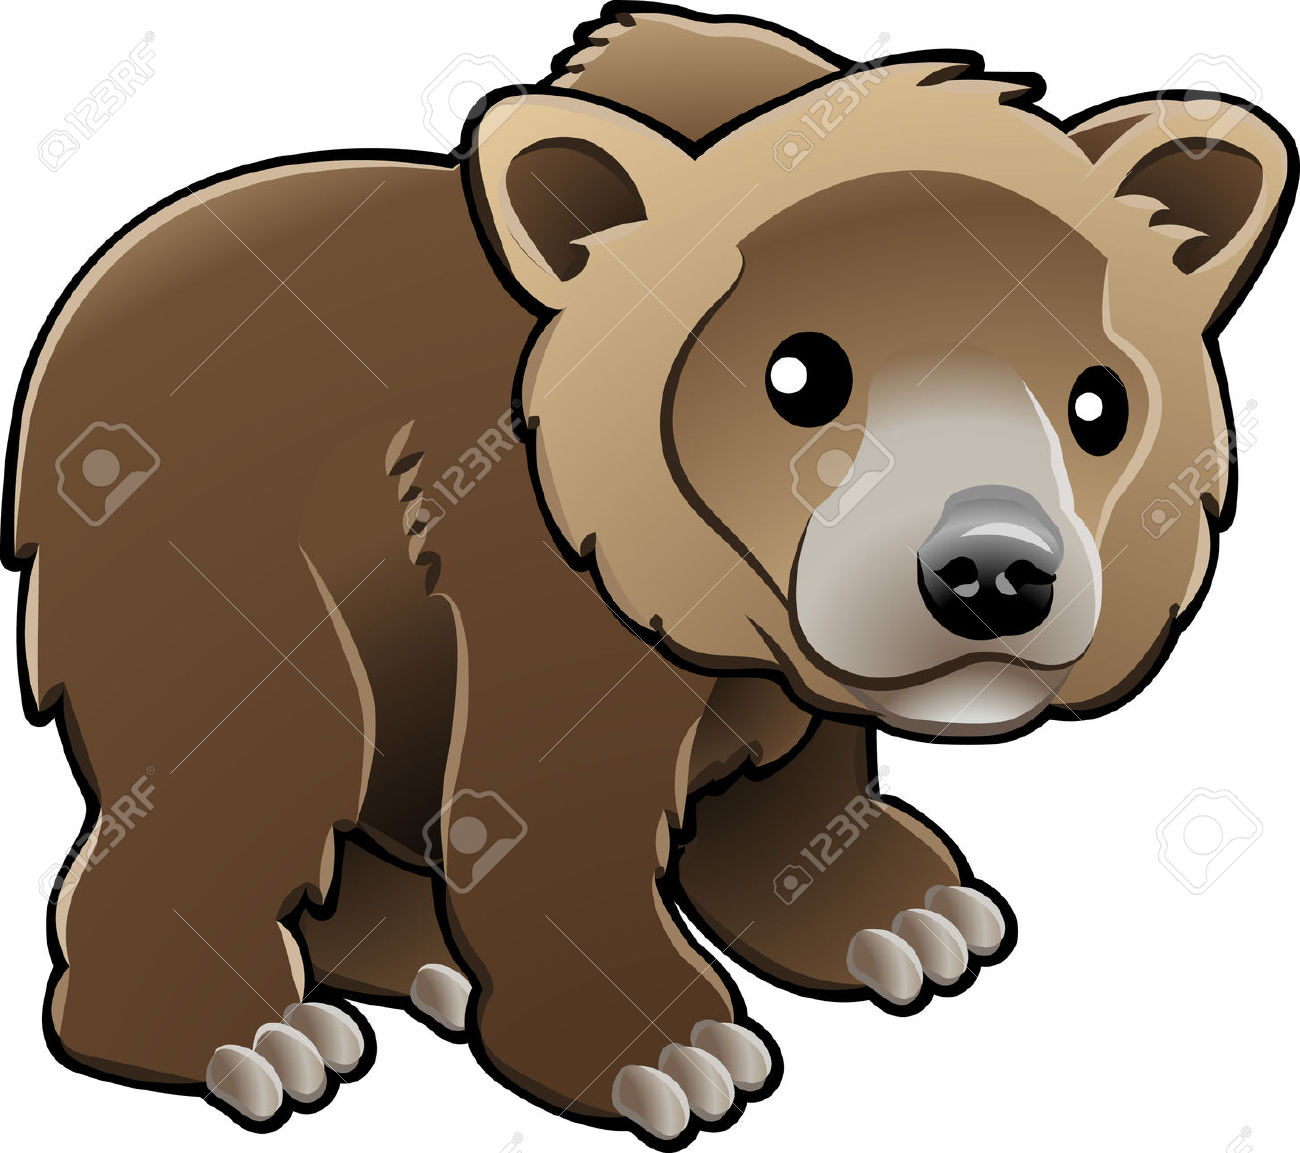 A Vector Illustration Of A Cute Grizzly, Brown Or Kodiak Bear.